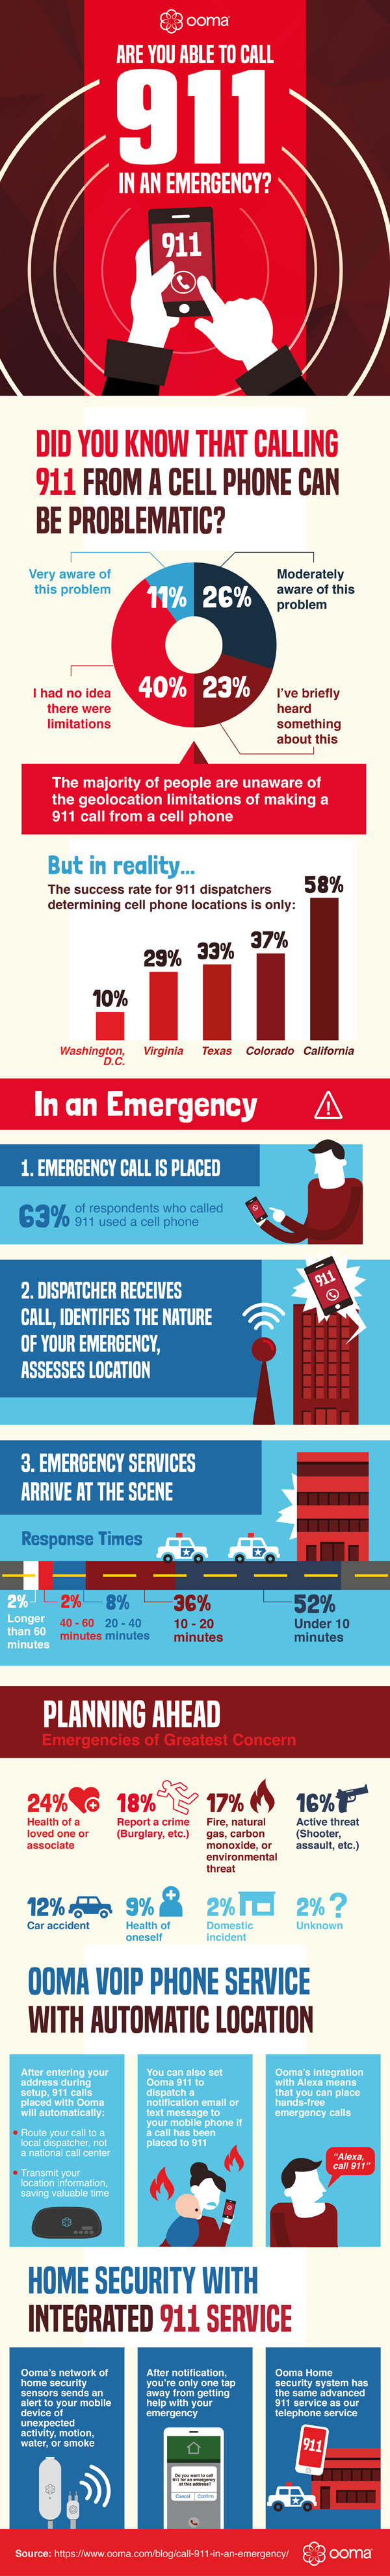 Are You Able To Call 911 In An Emergency? #infographic